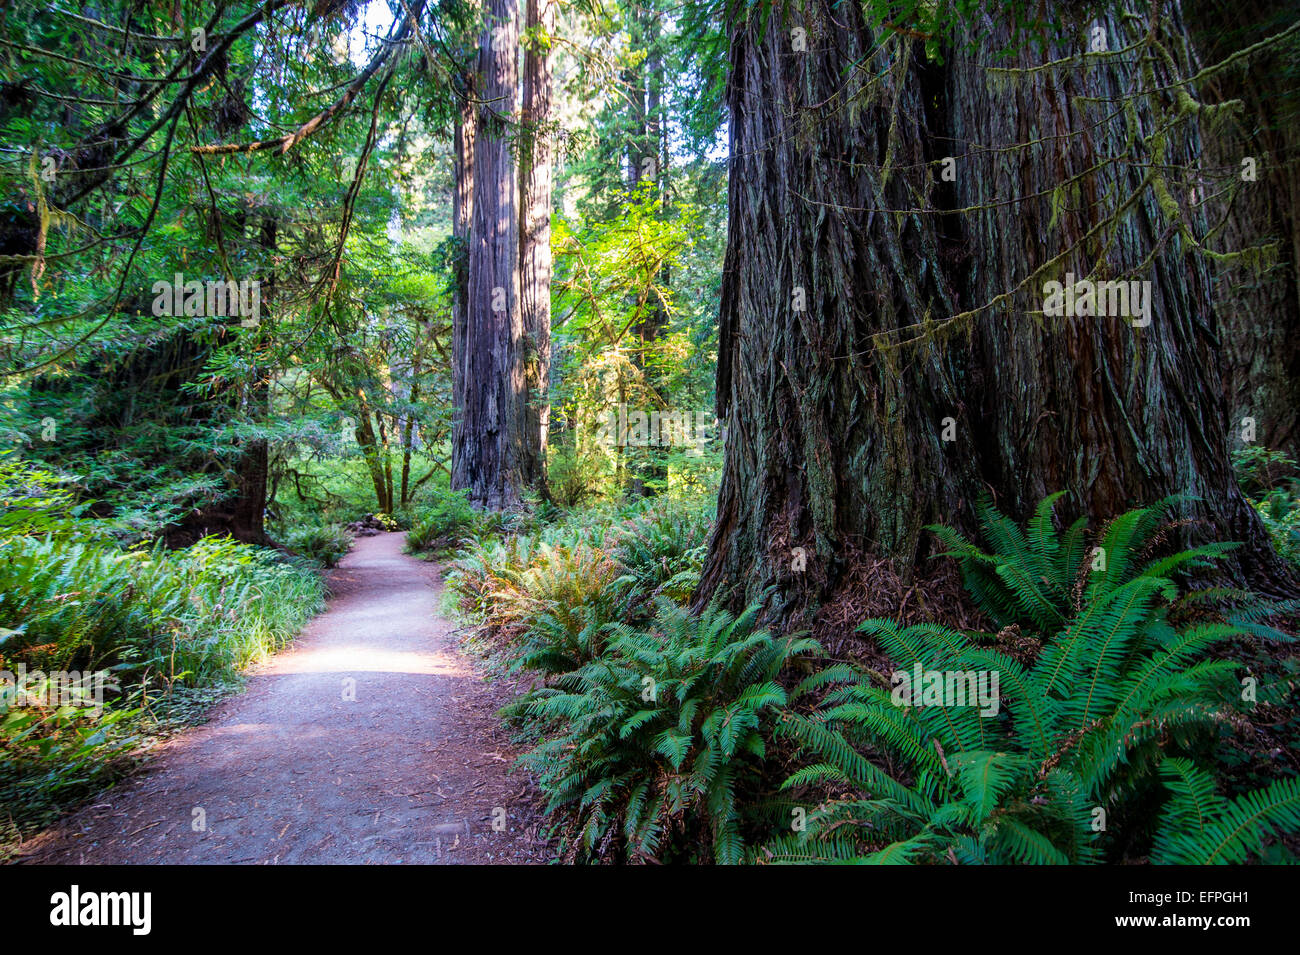 Giant redwood trees in the Redwoods National and State parks, California, USA - Stock Image